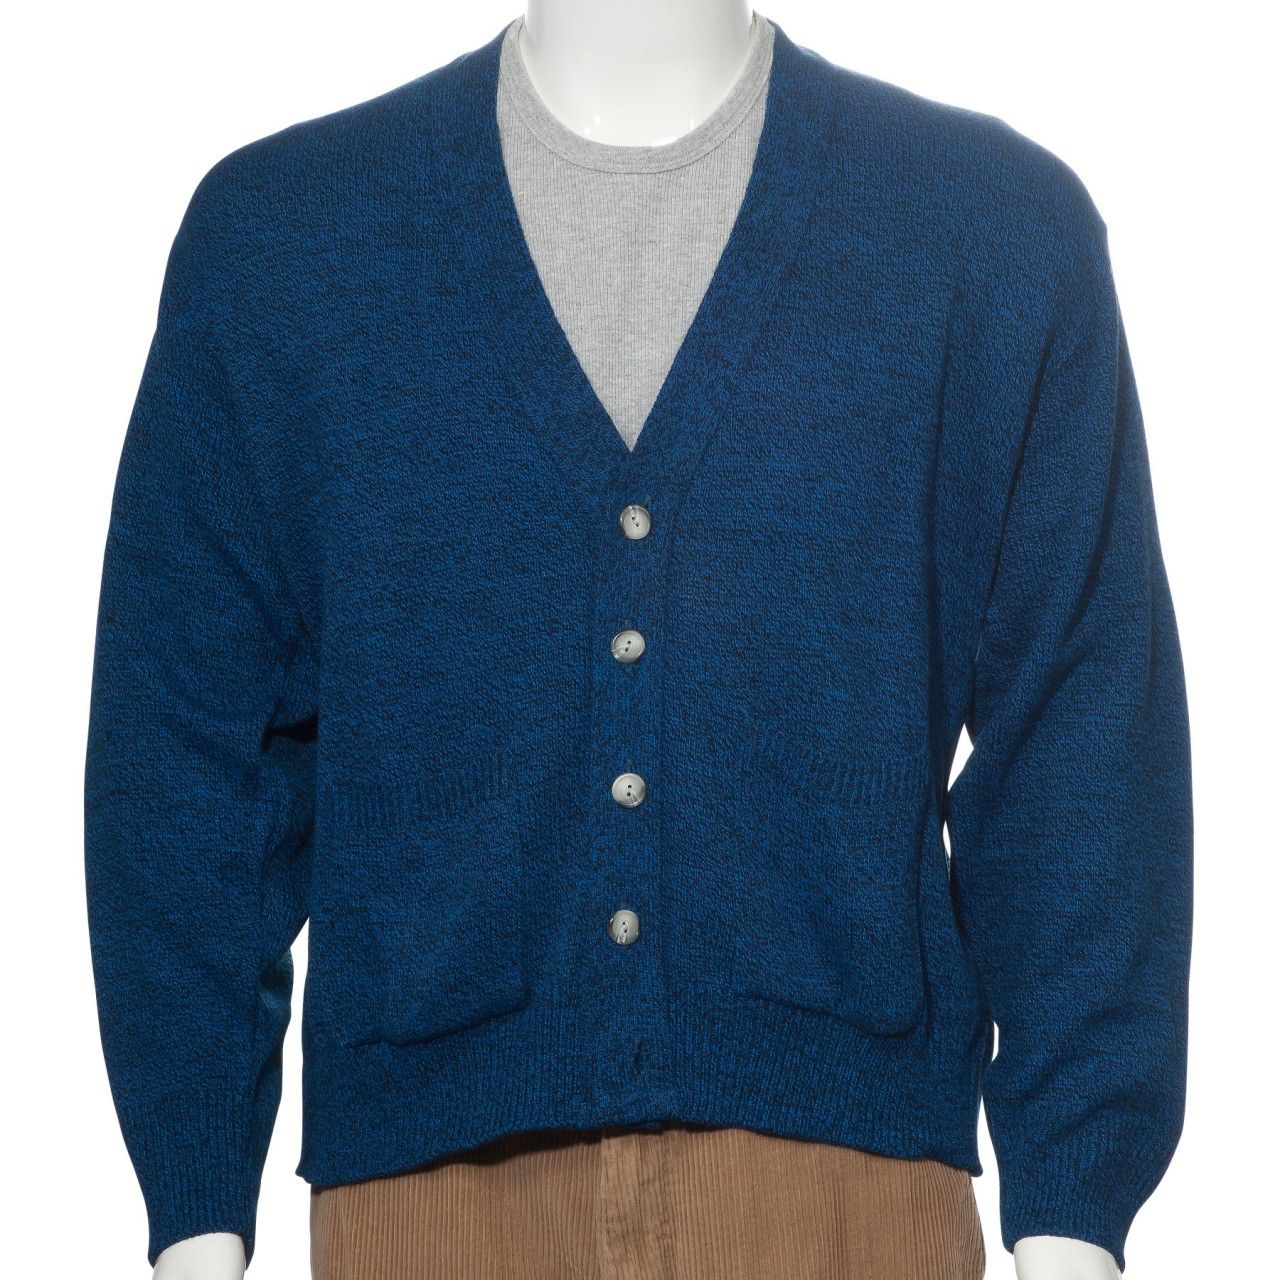 Men's Knit Cardigan Button Down Sweater